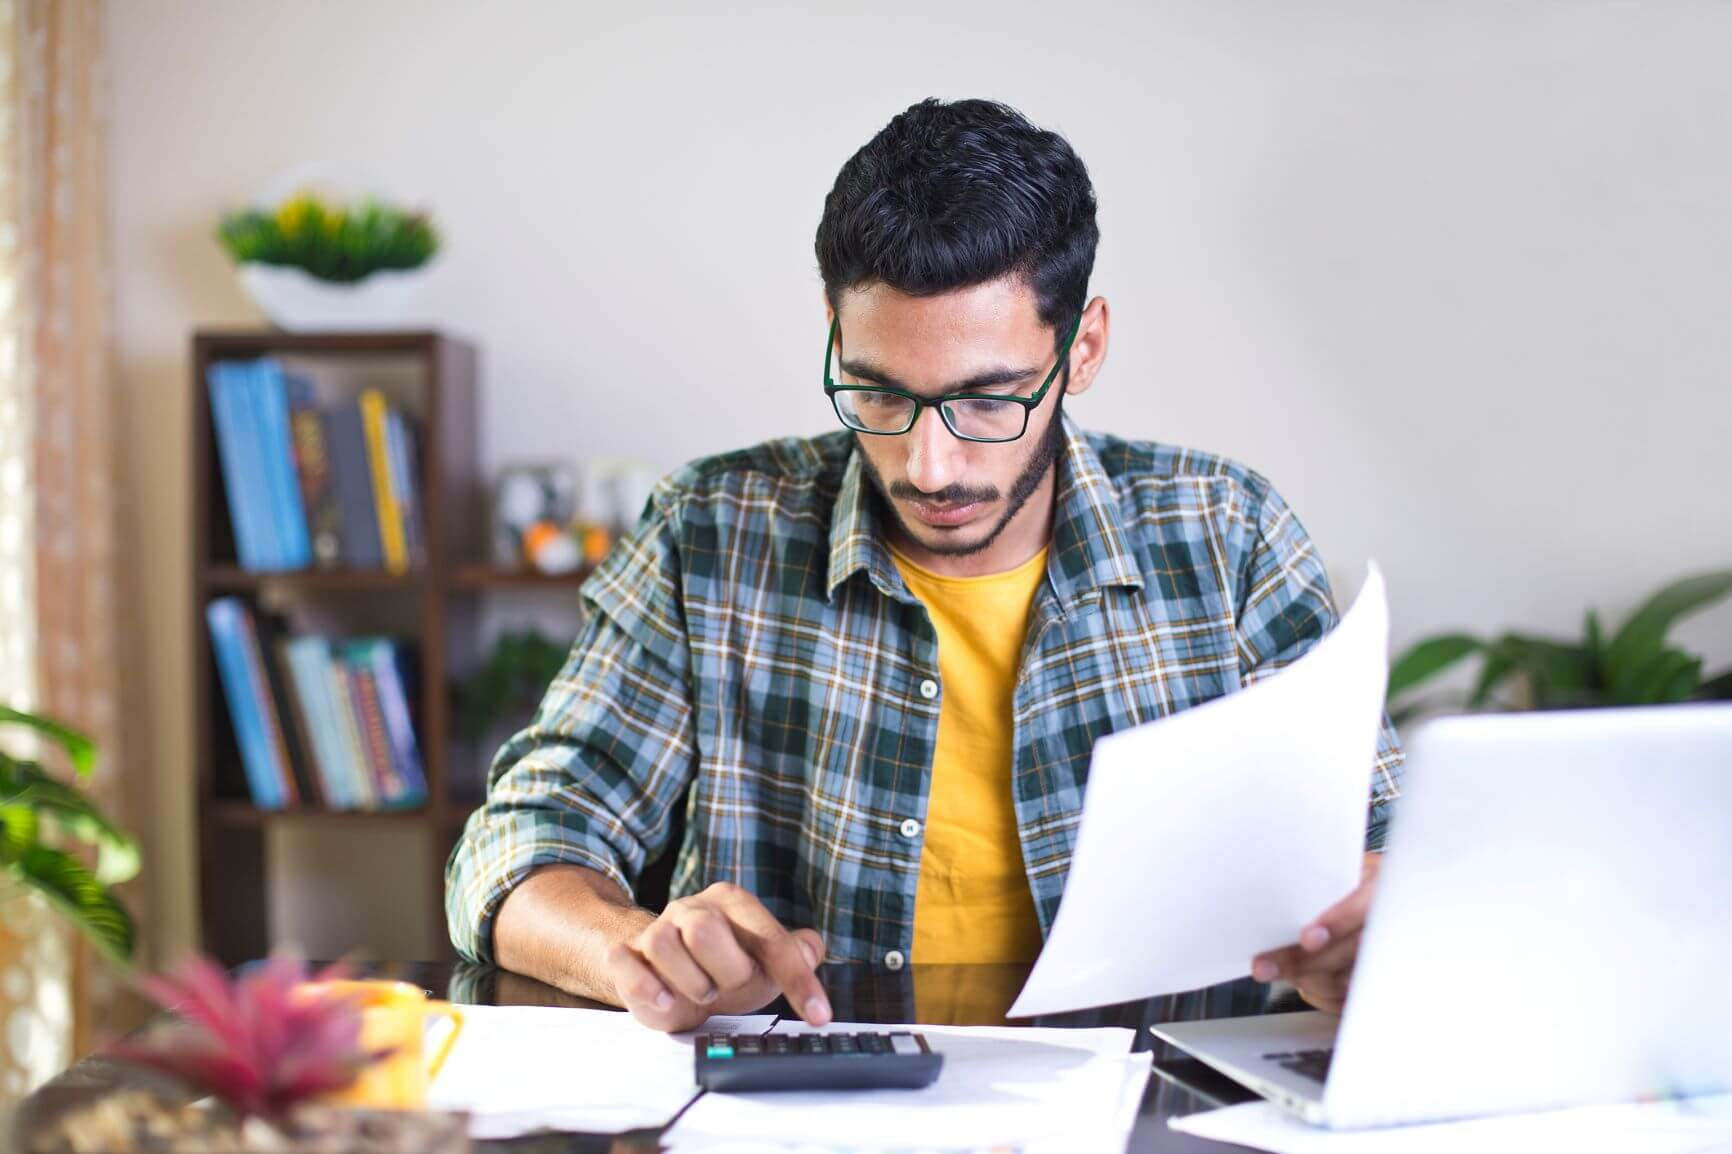 What are the benefits of using Xero? - More than Motivation: Study, Career and Life Inspiration